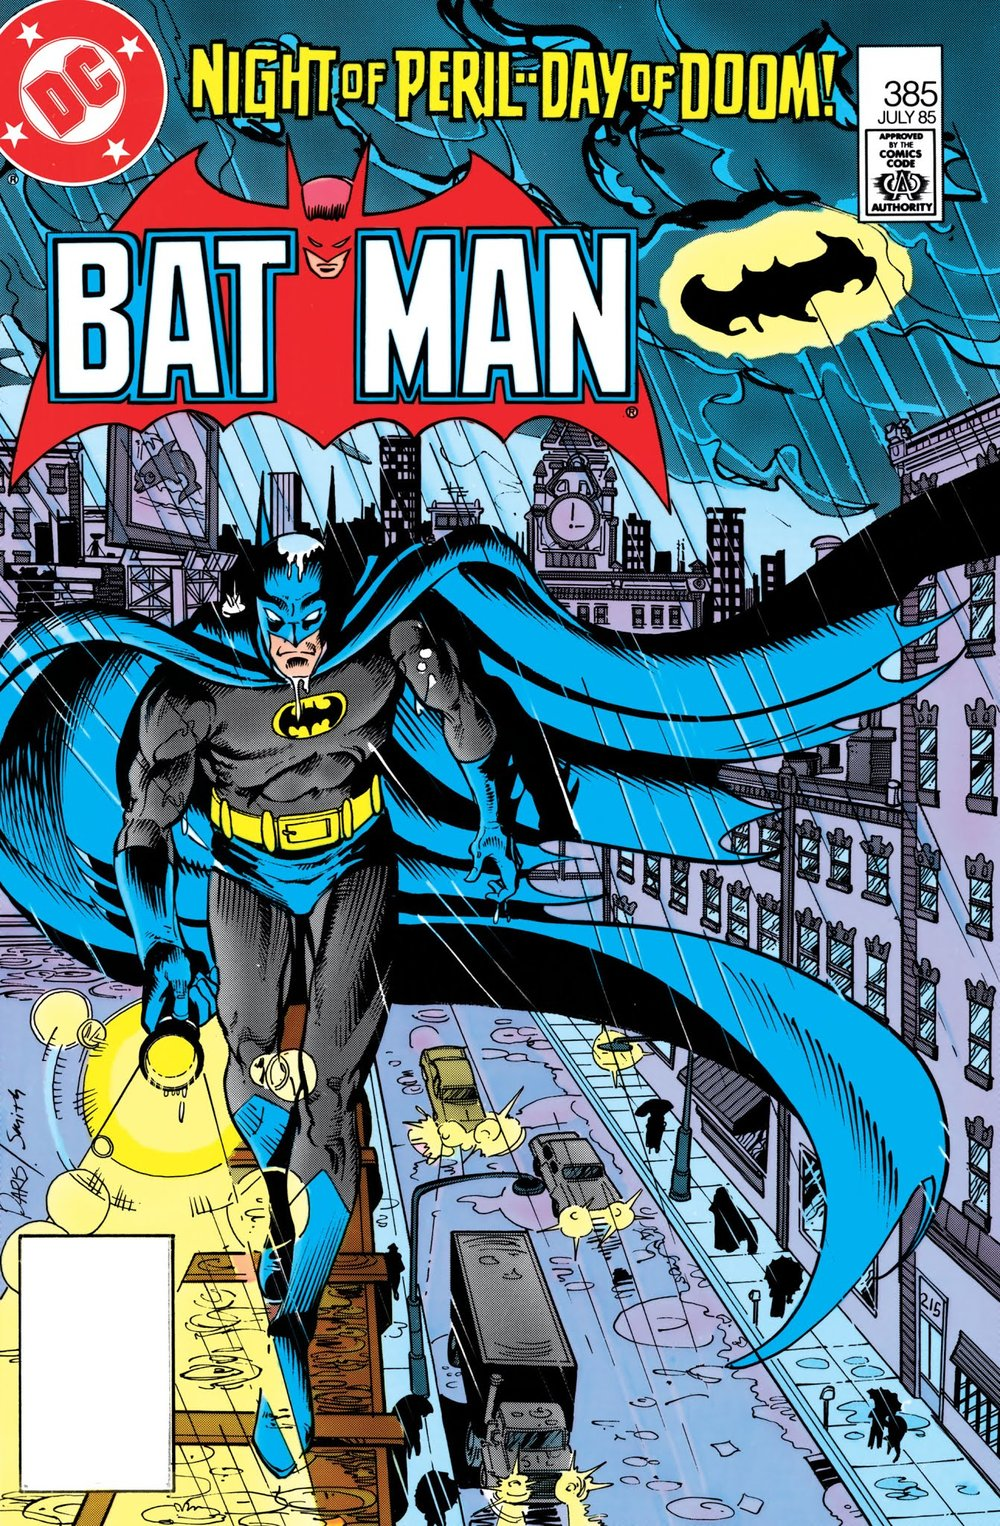 Batman (1940) #385, cover penciled by Paris Cullins & inked by Bob Smith.